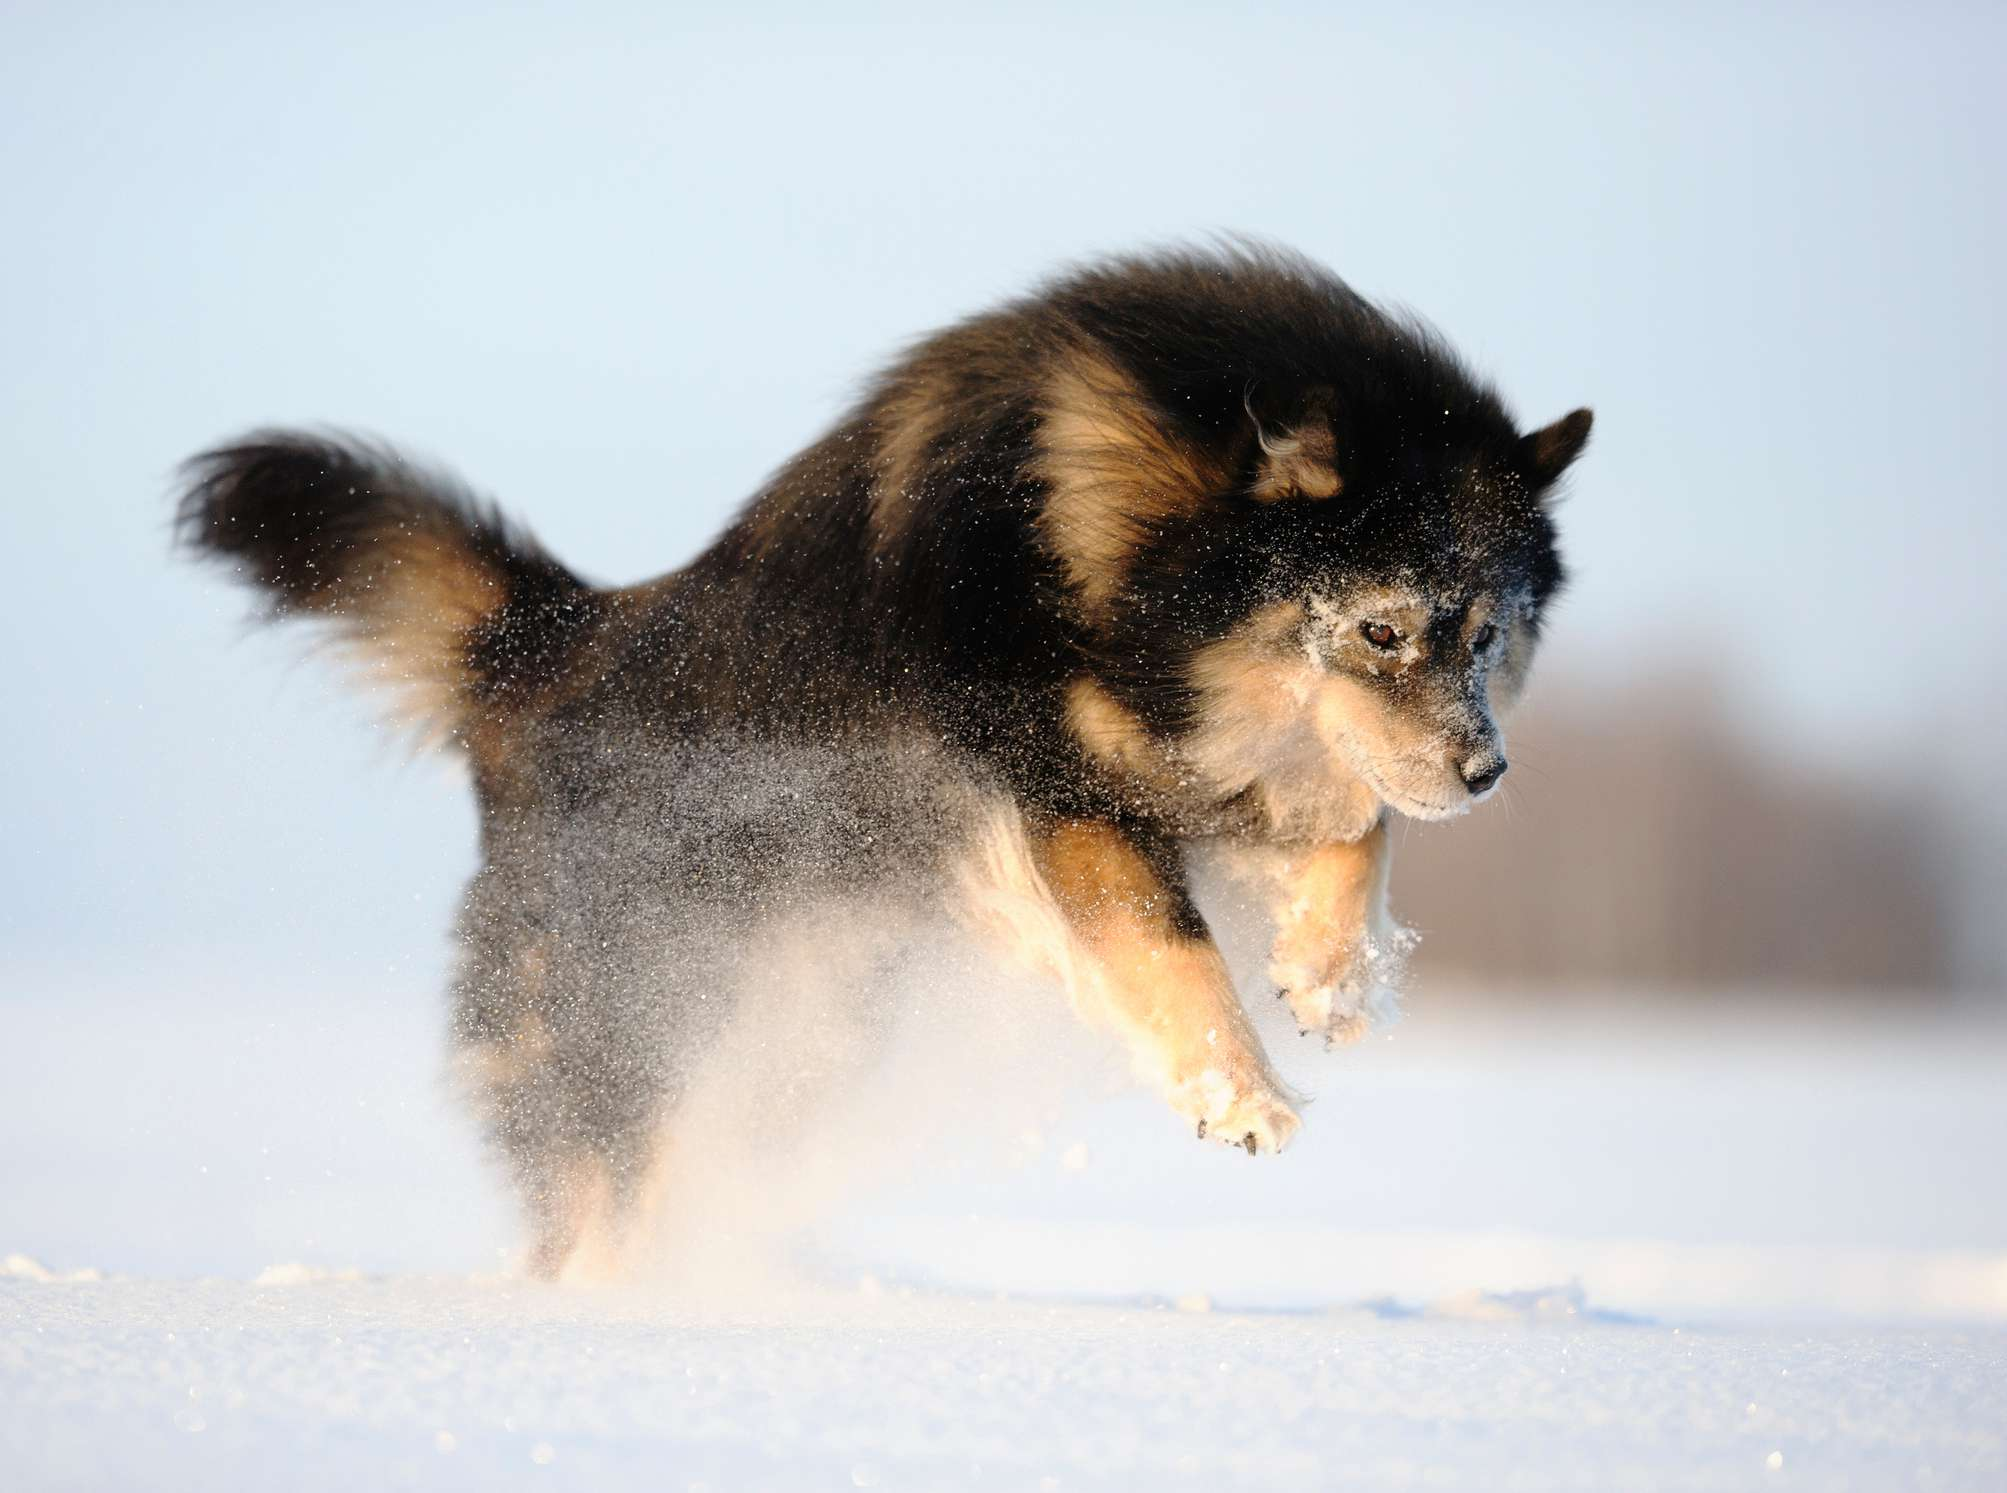 Finnish Lapphund jumping in the snow